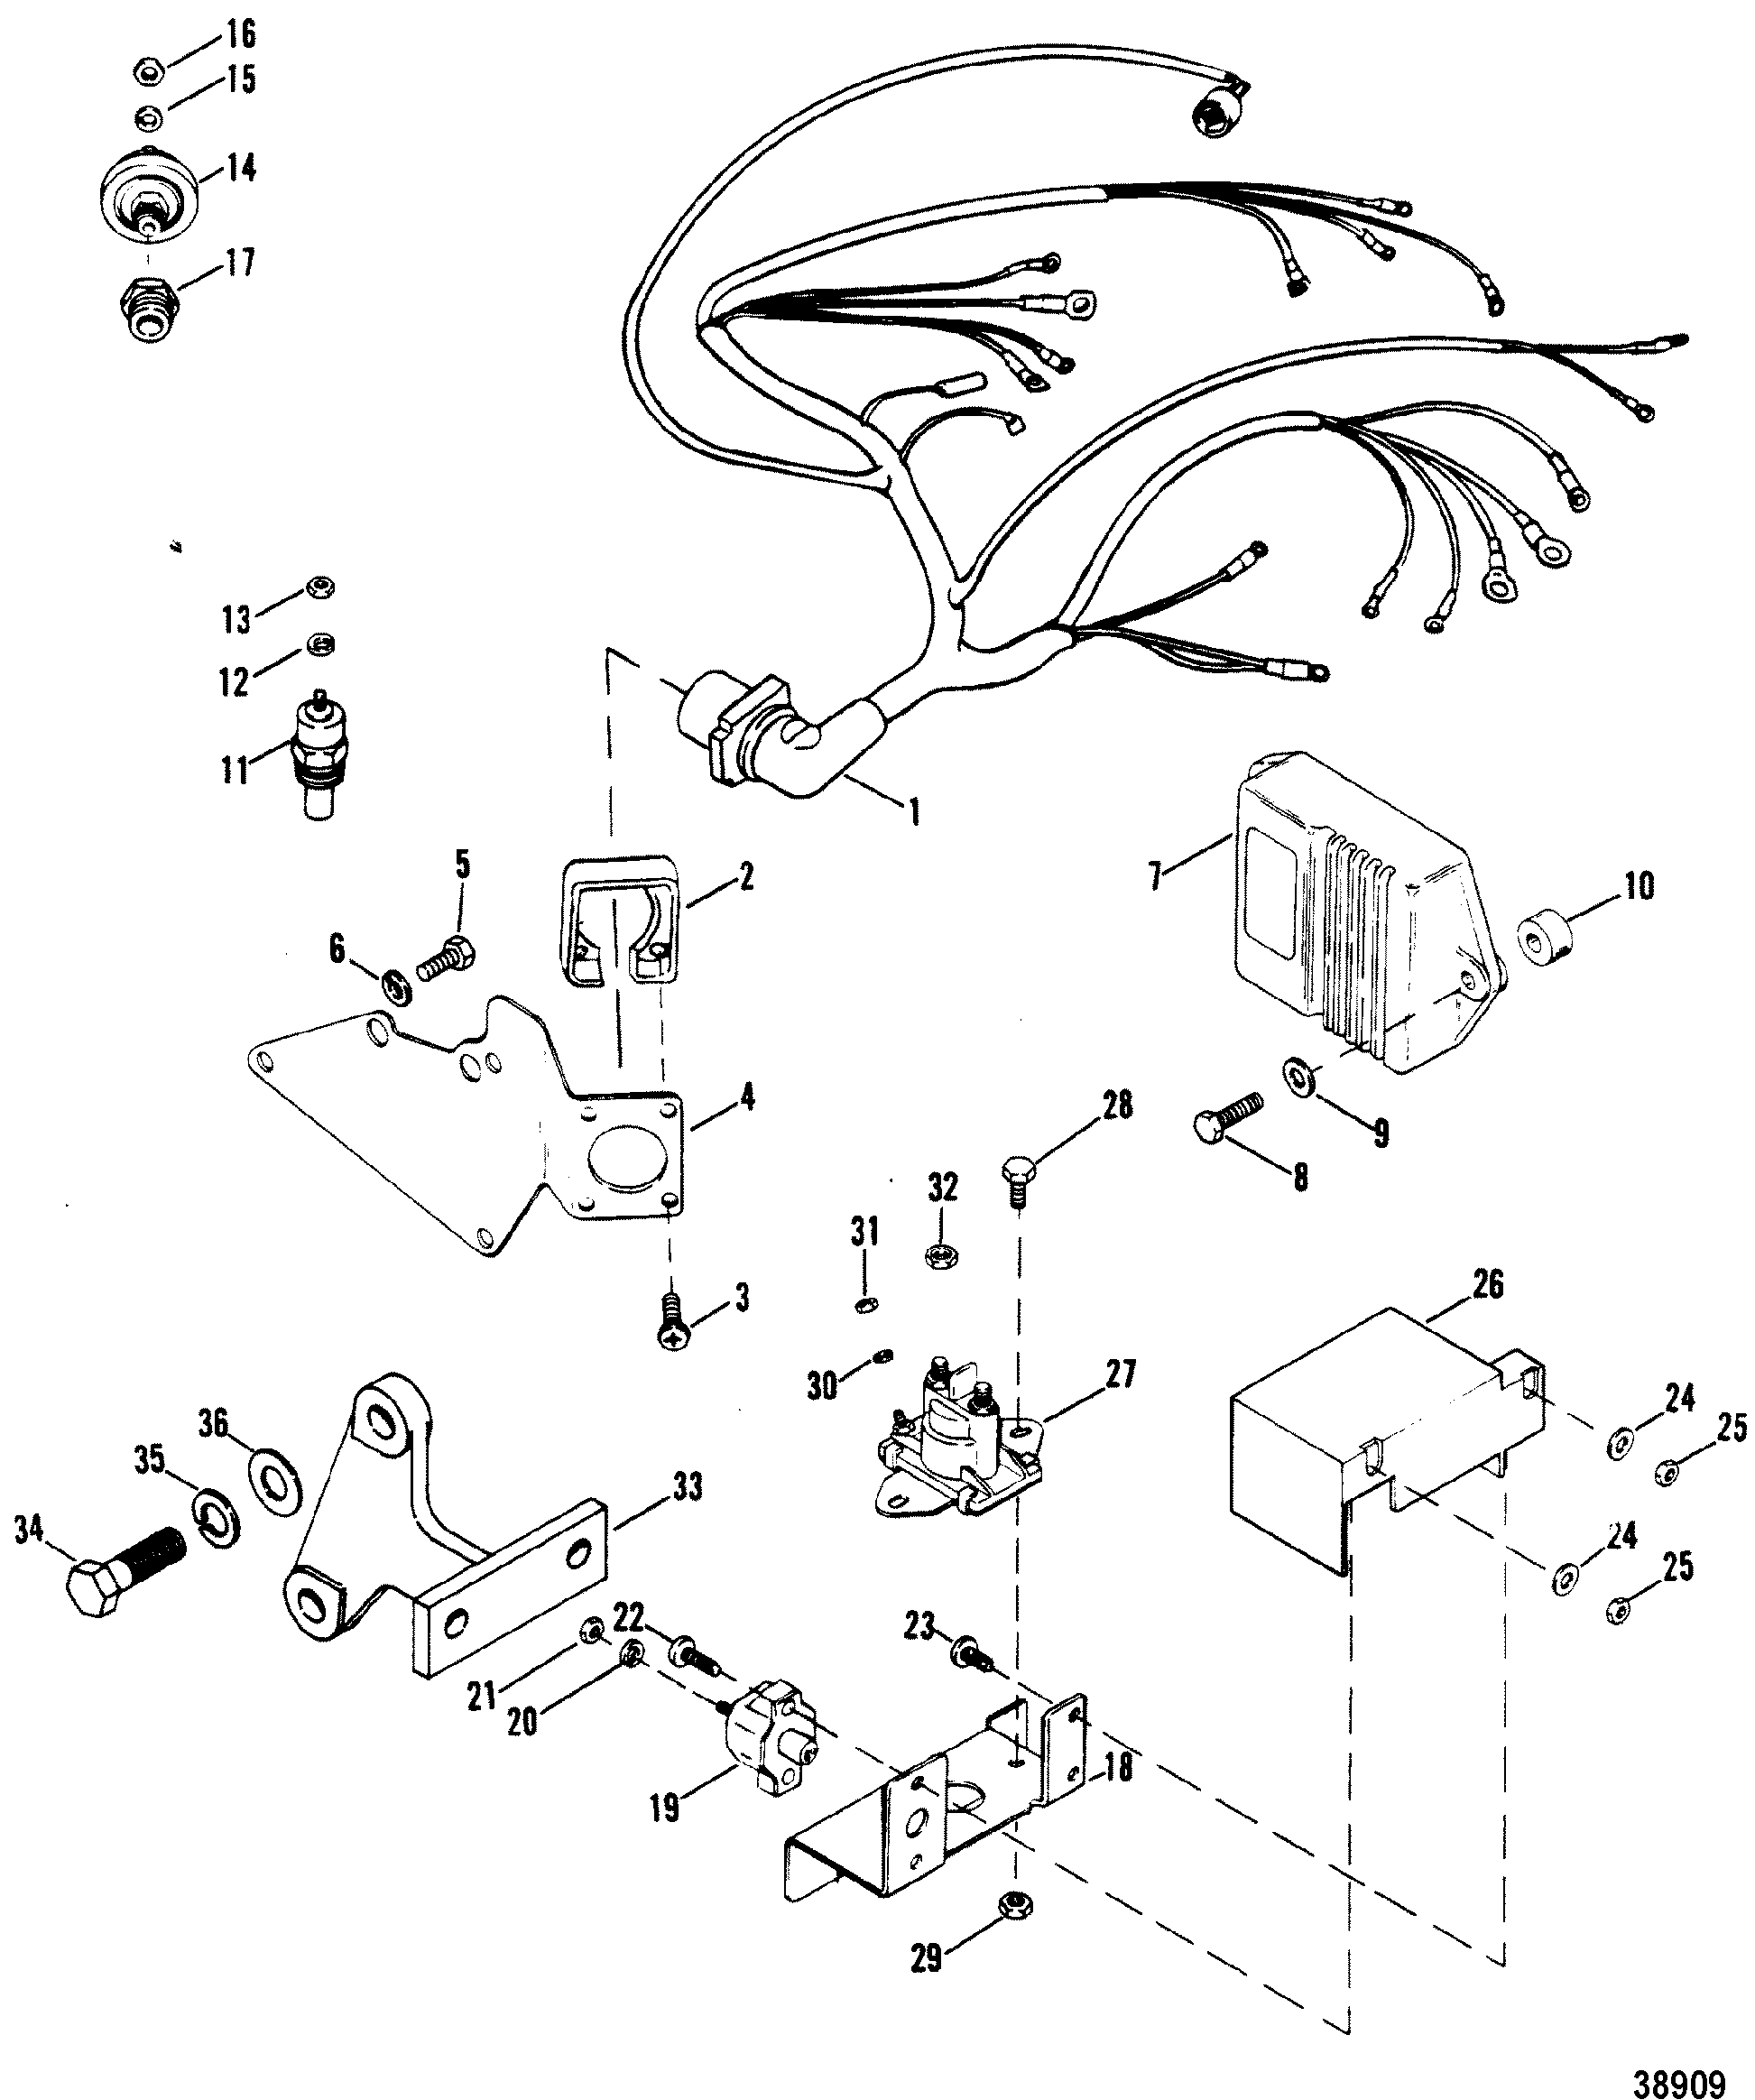 Wiring harness electrical and ignition